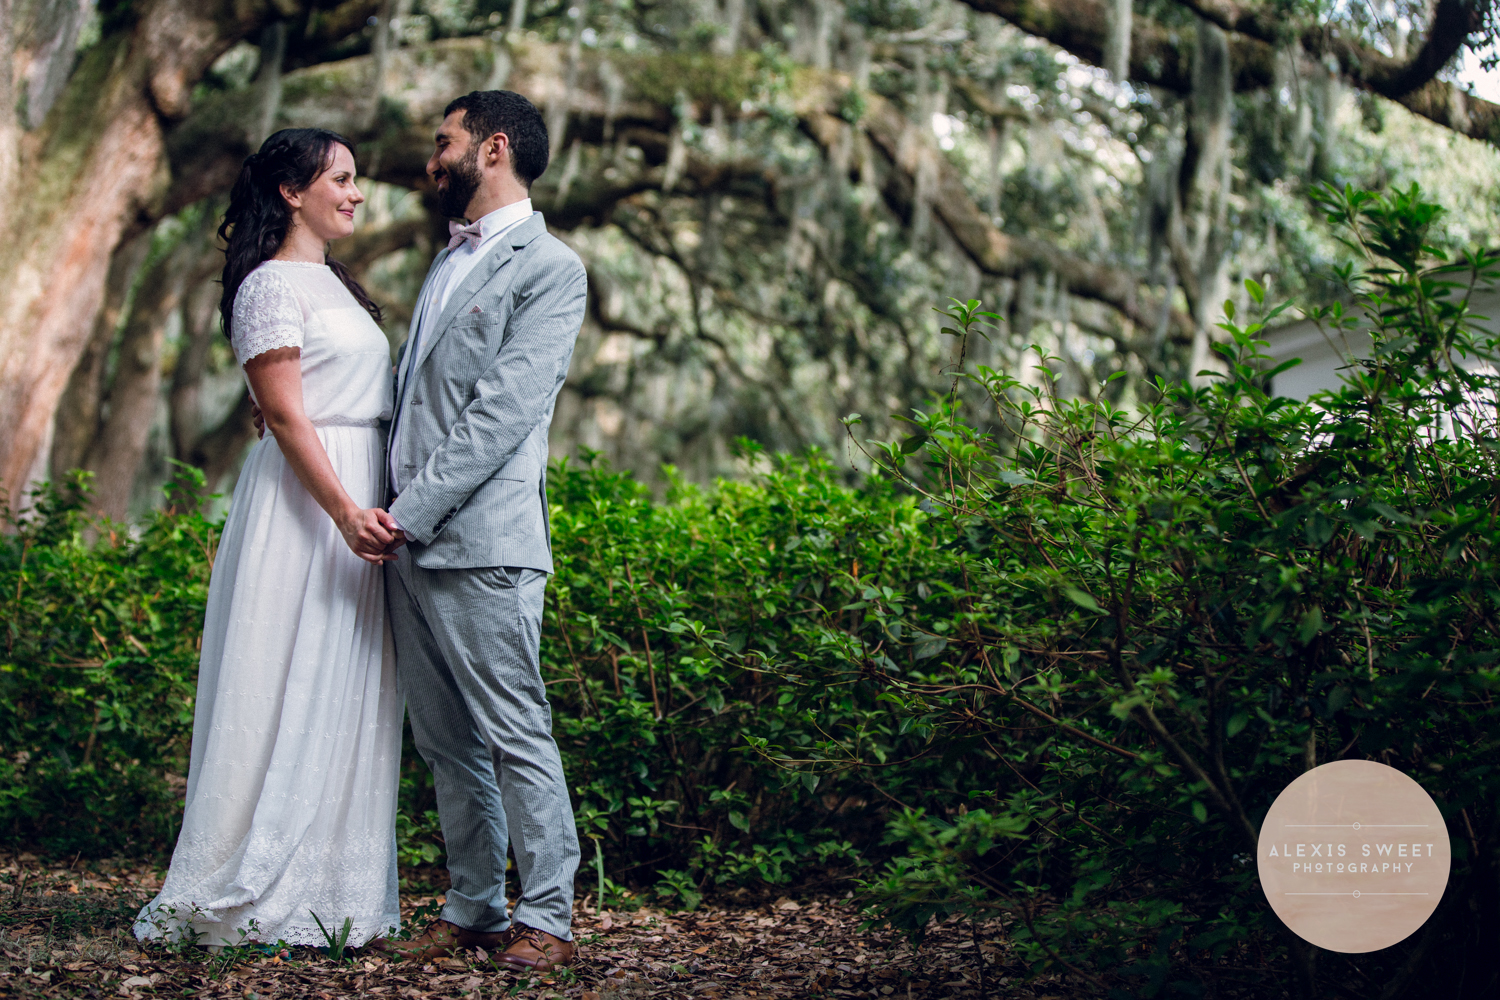 alexis-sweet-photography-ivory-and-beau-bridal-boutique-monterey-square-wedding-savannah-wedding-planner-savannah-weddings-historic-savannah-wedding-vintage-wedding-peach-wedding-southern-vintage-wedding-savannah-bridal-boutique-16.jpg